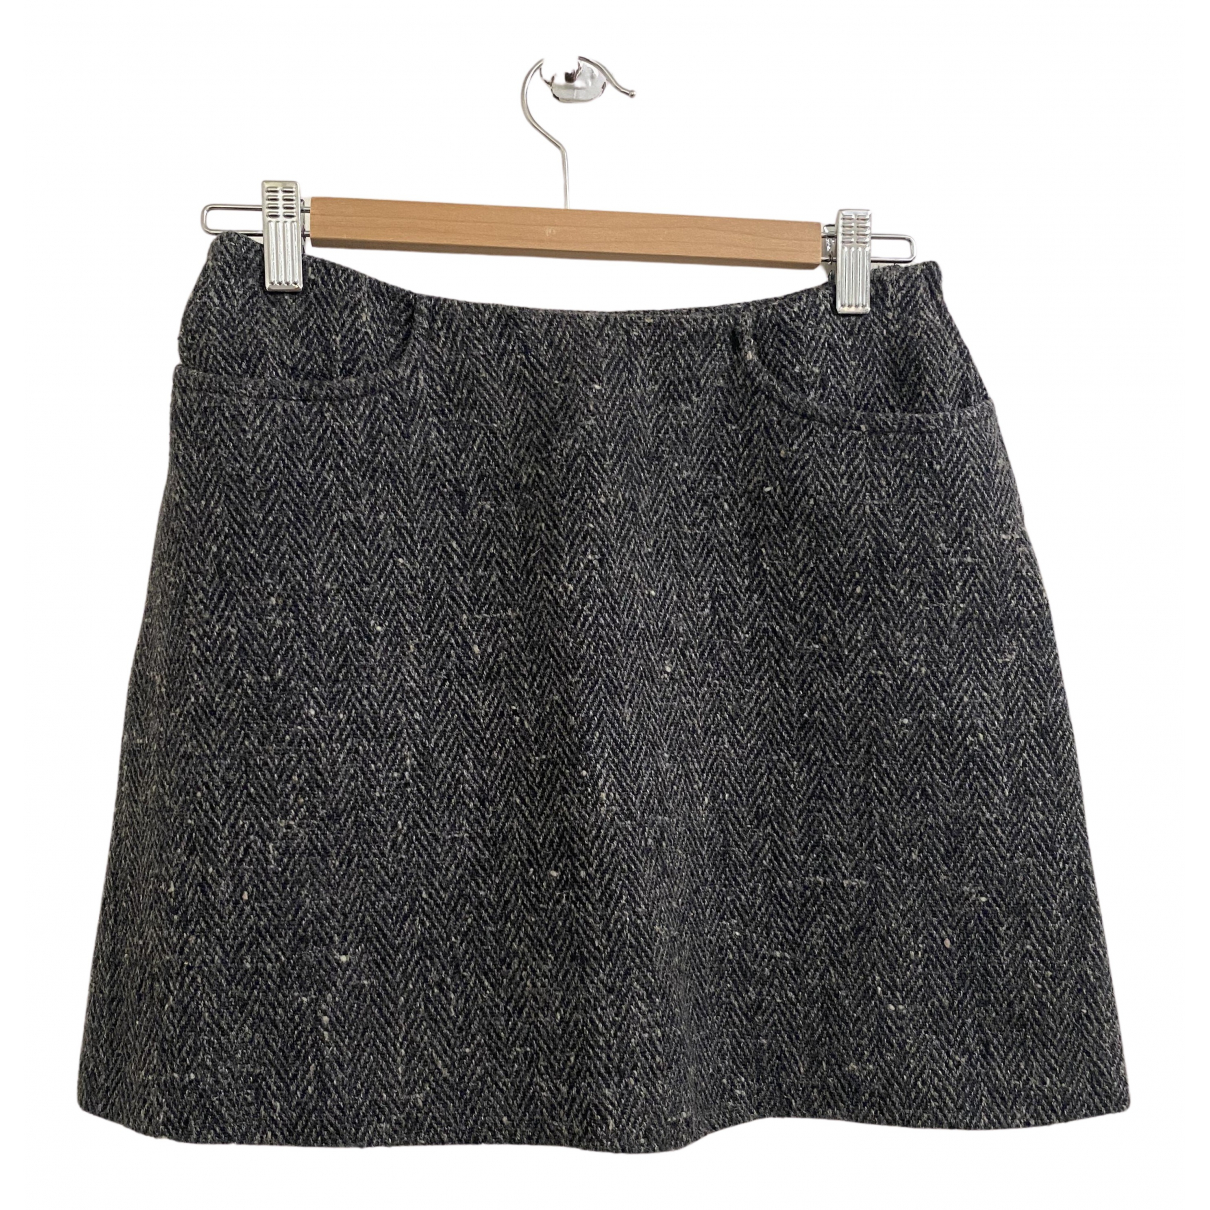 Dolce & Gabbana N Anthracite Wool skirt for Women 40 IT